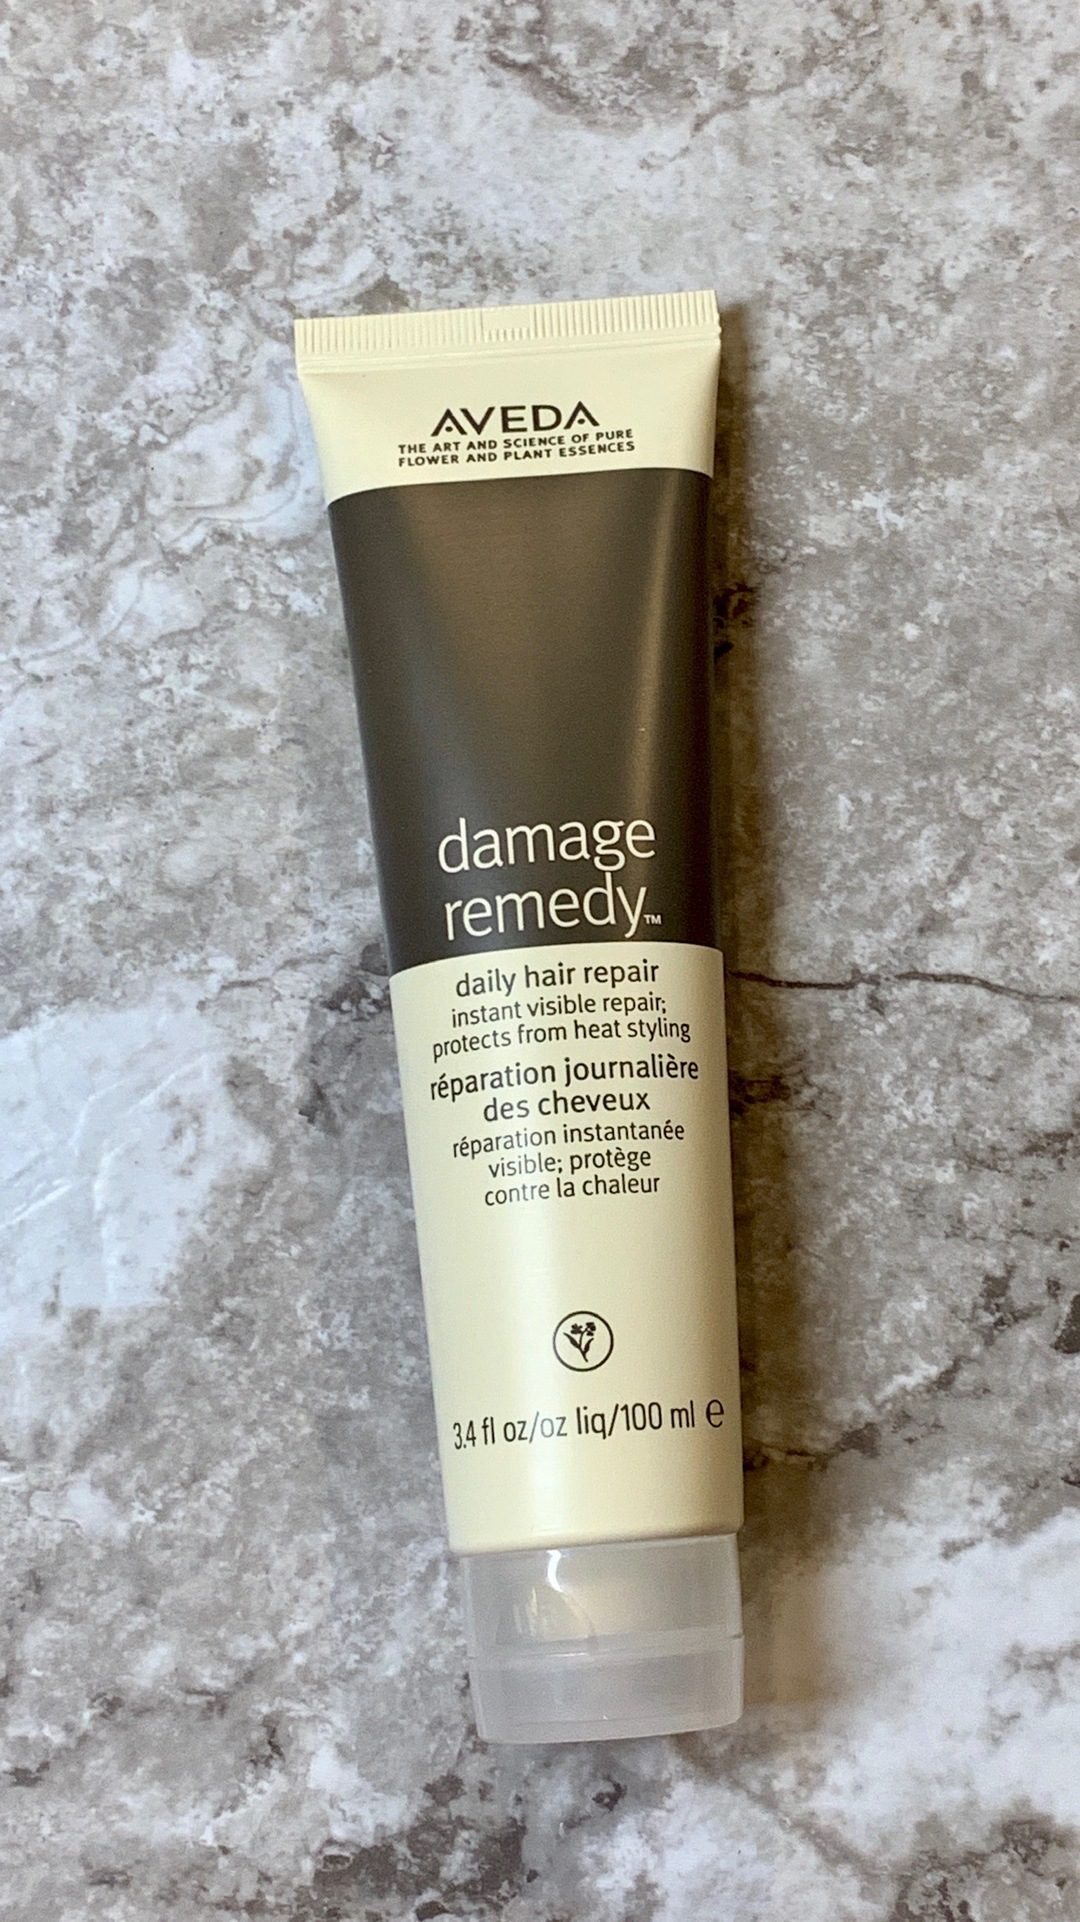 FabFitFun Fall 2019 - Aveda Damage Remedy Daily Hair Repair